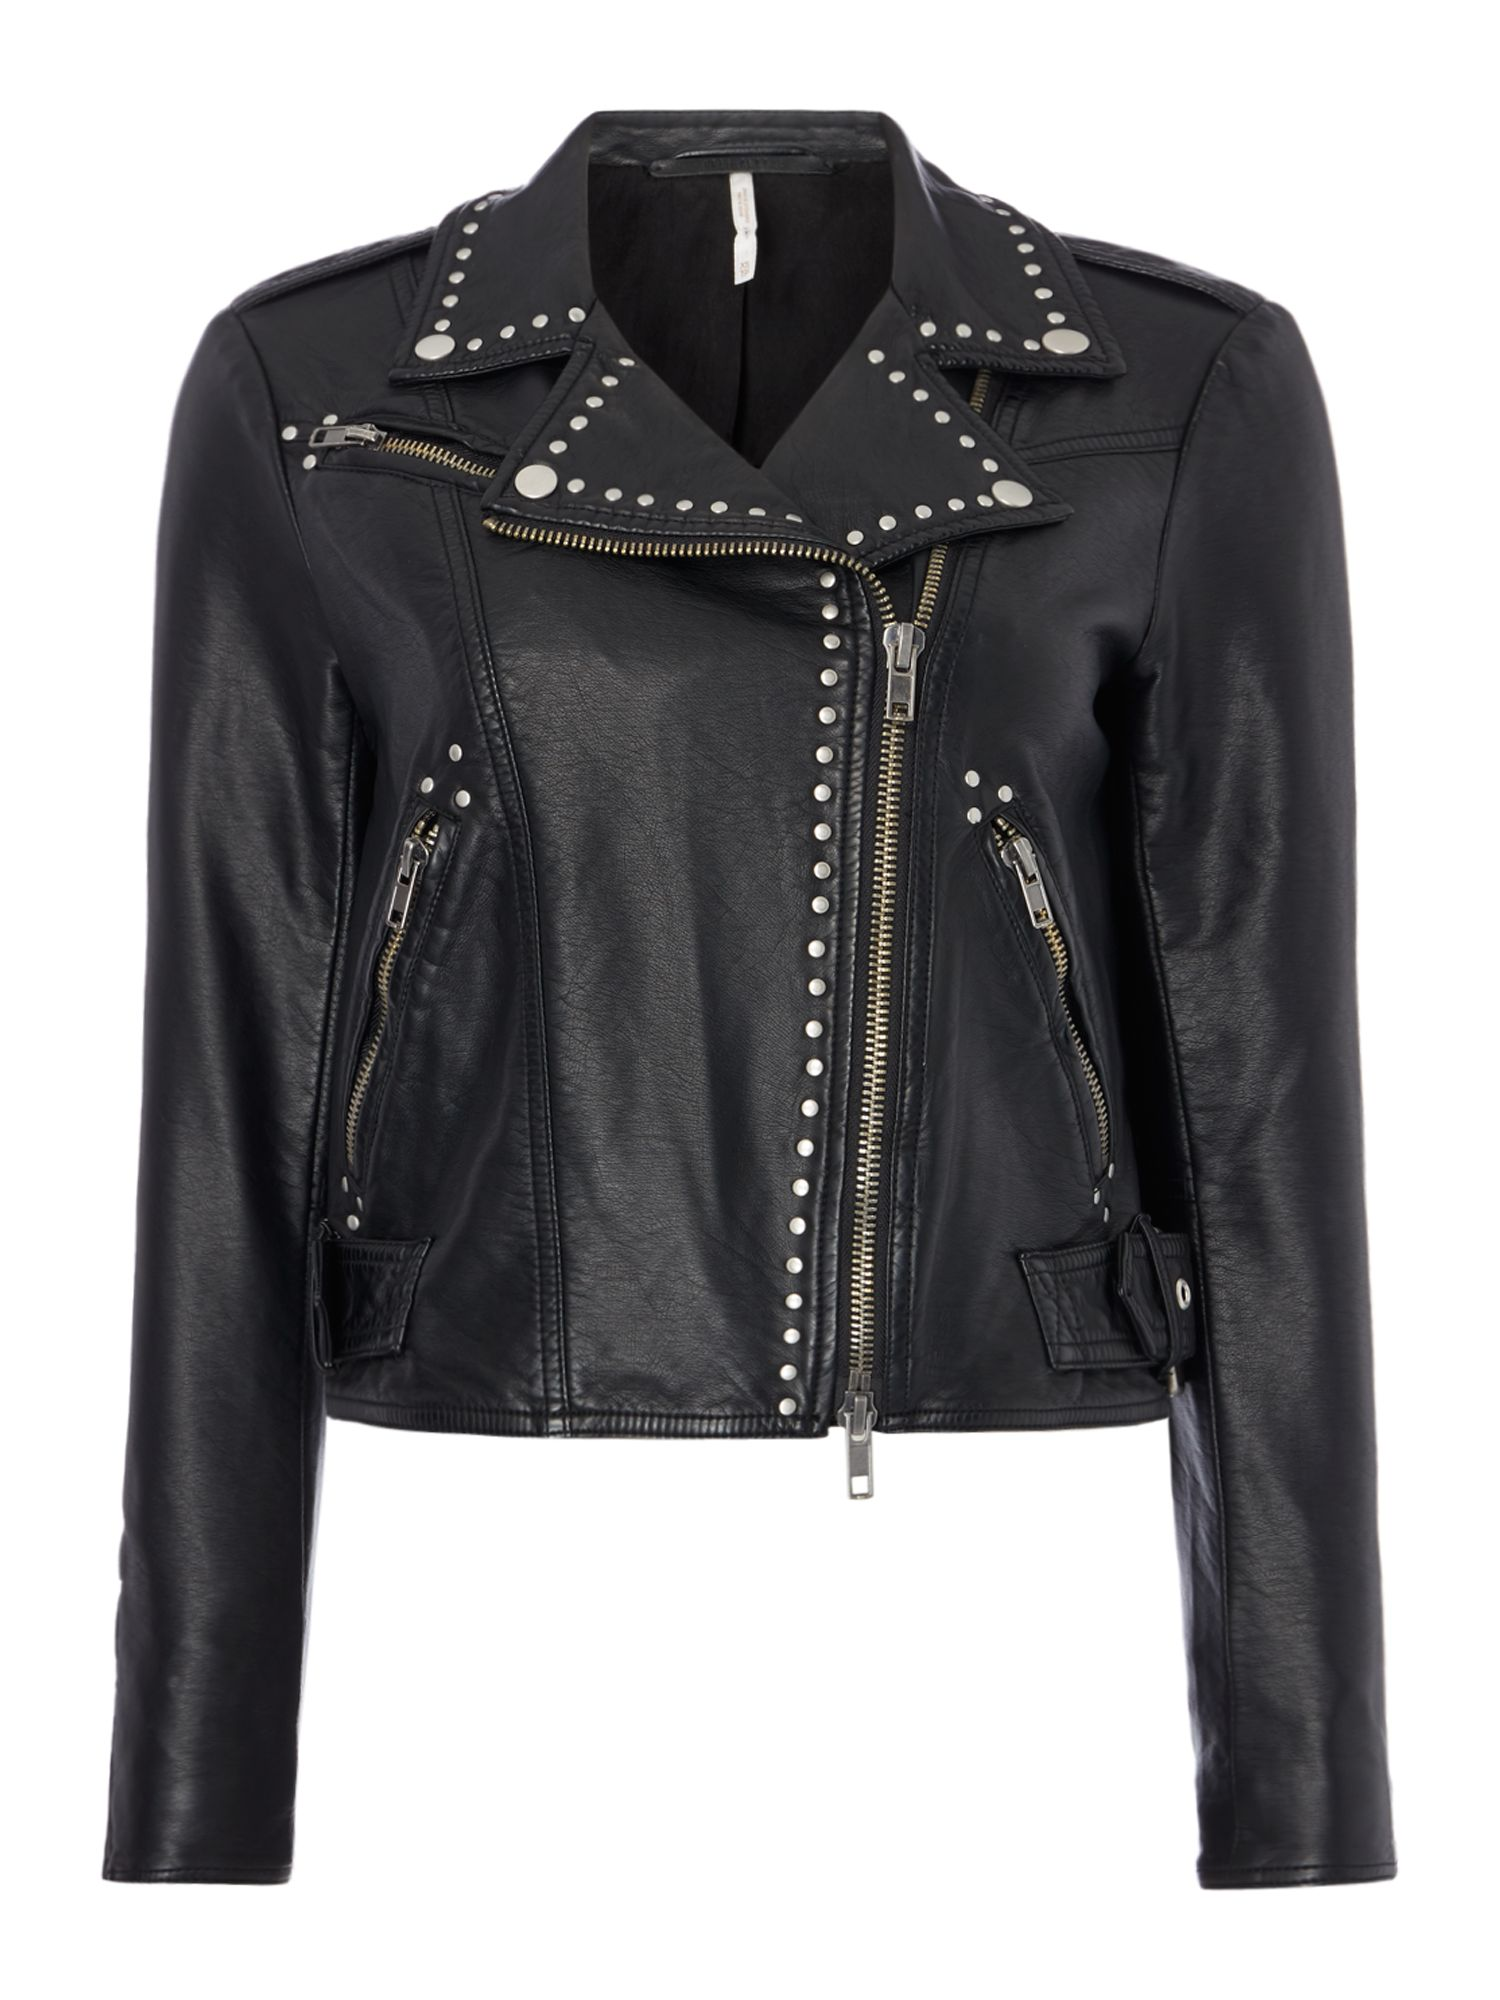 Free People Vegan Leather Jacket With Studded Detail, Black